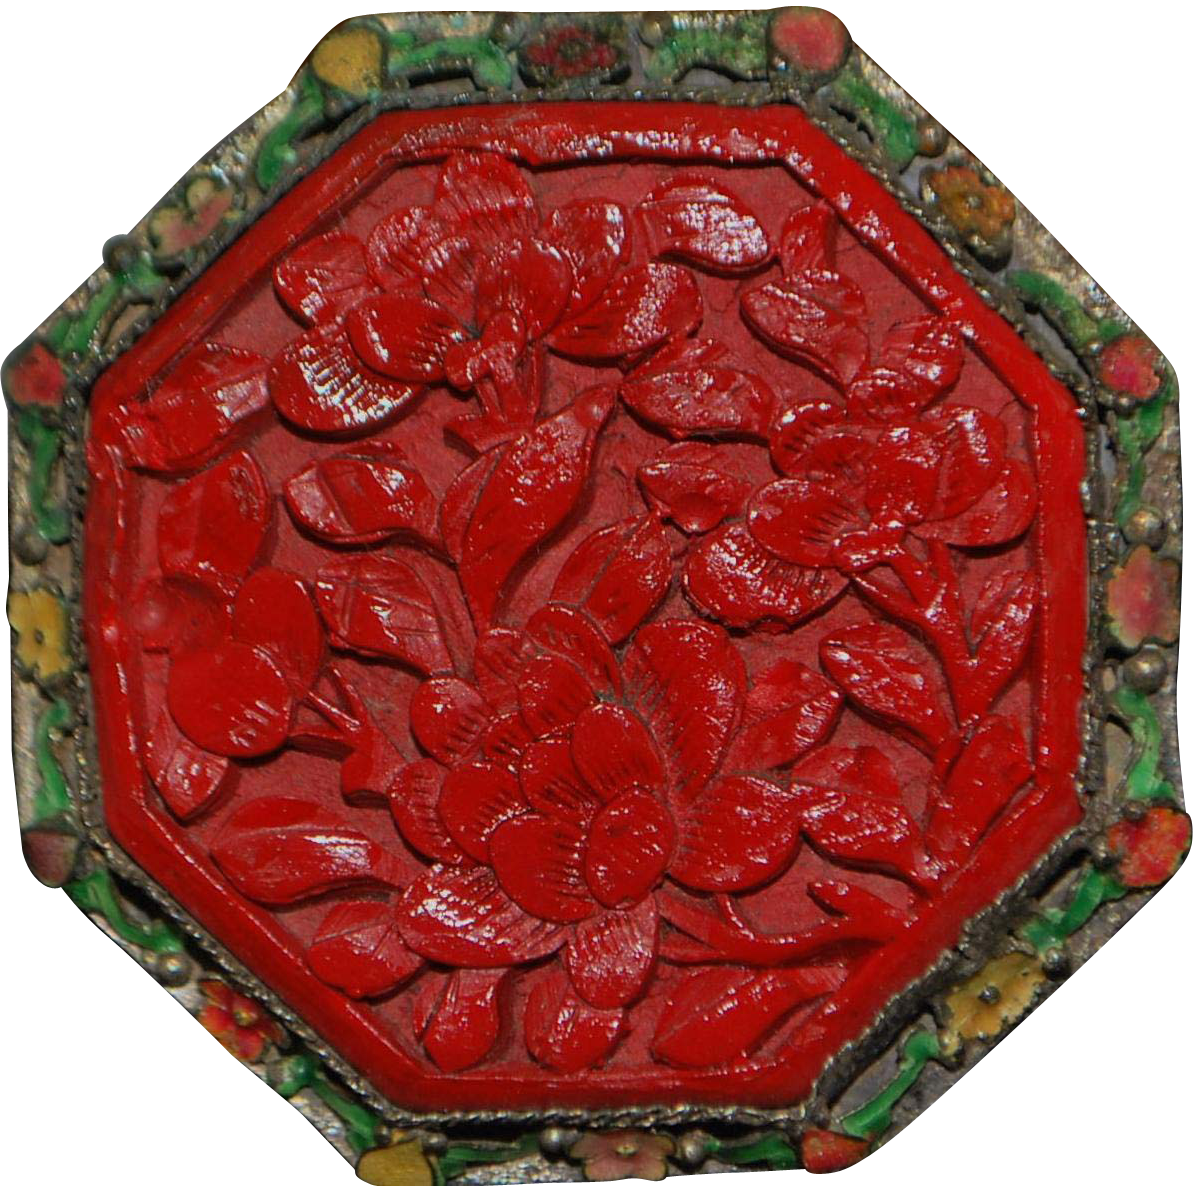 Large Chinese Cinnebar Filgree Enamel Brooch - 1900